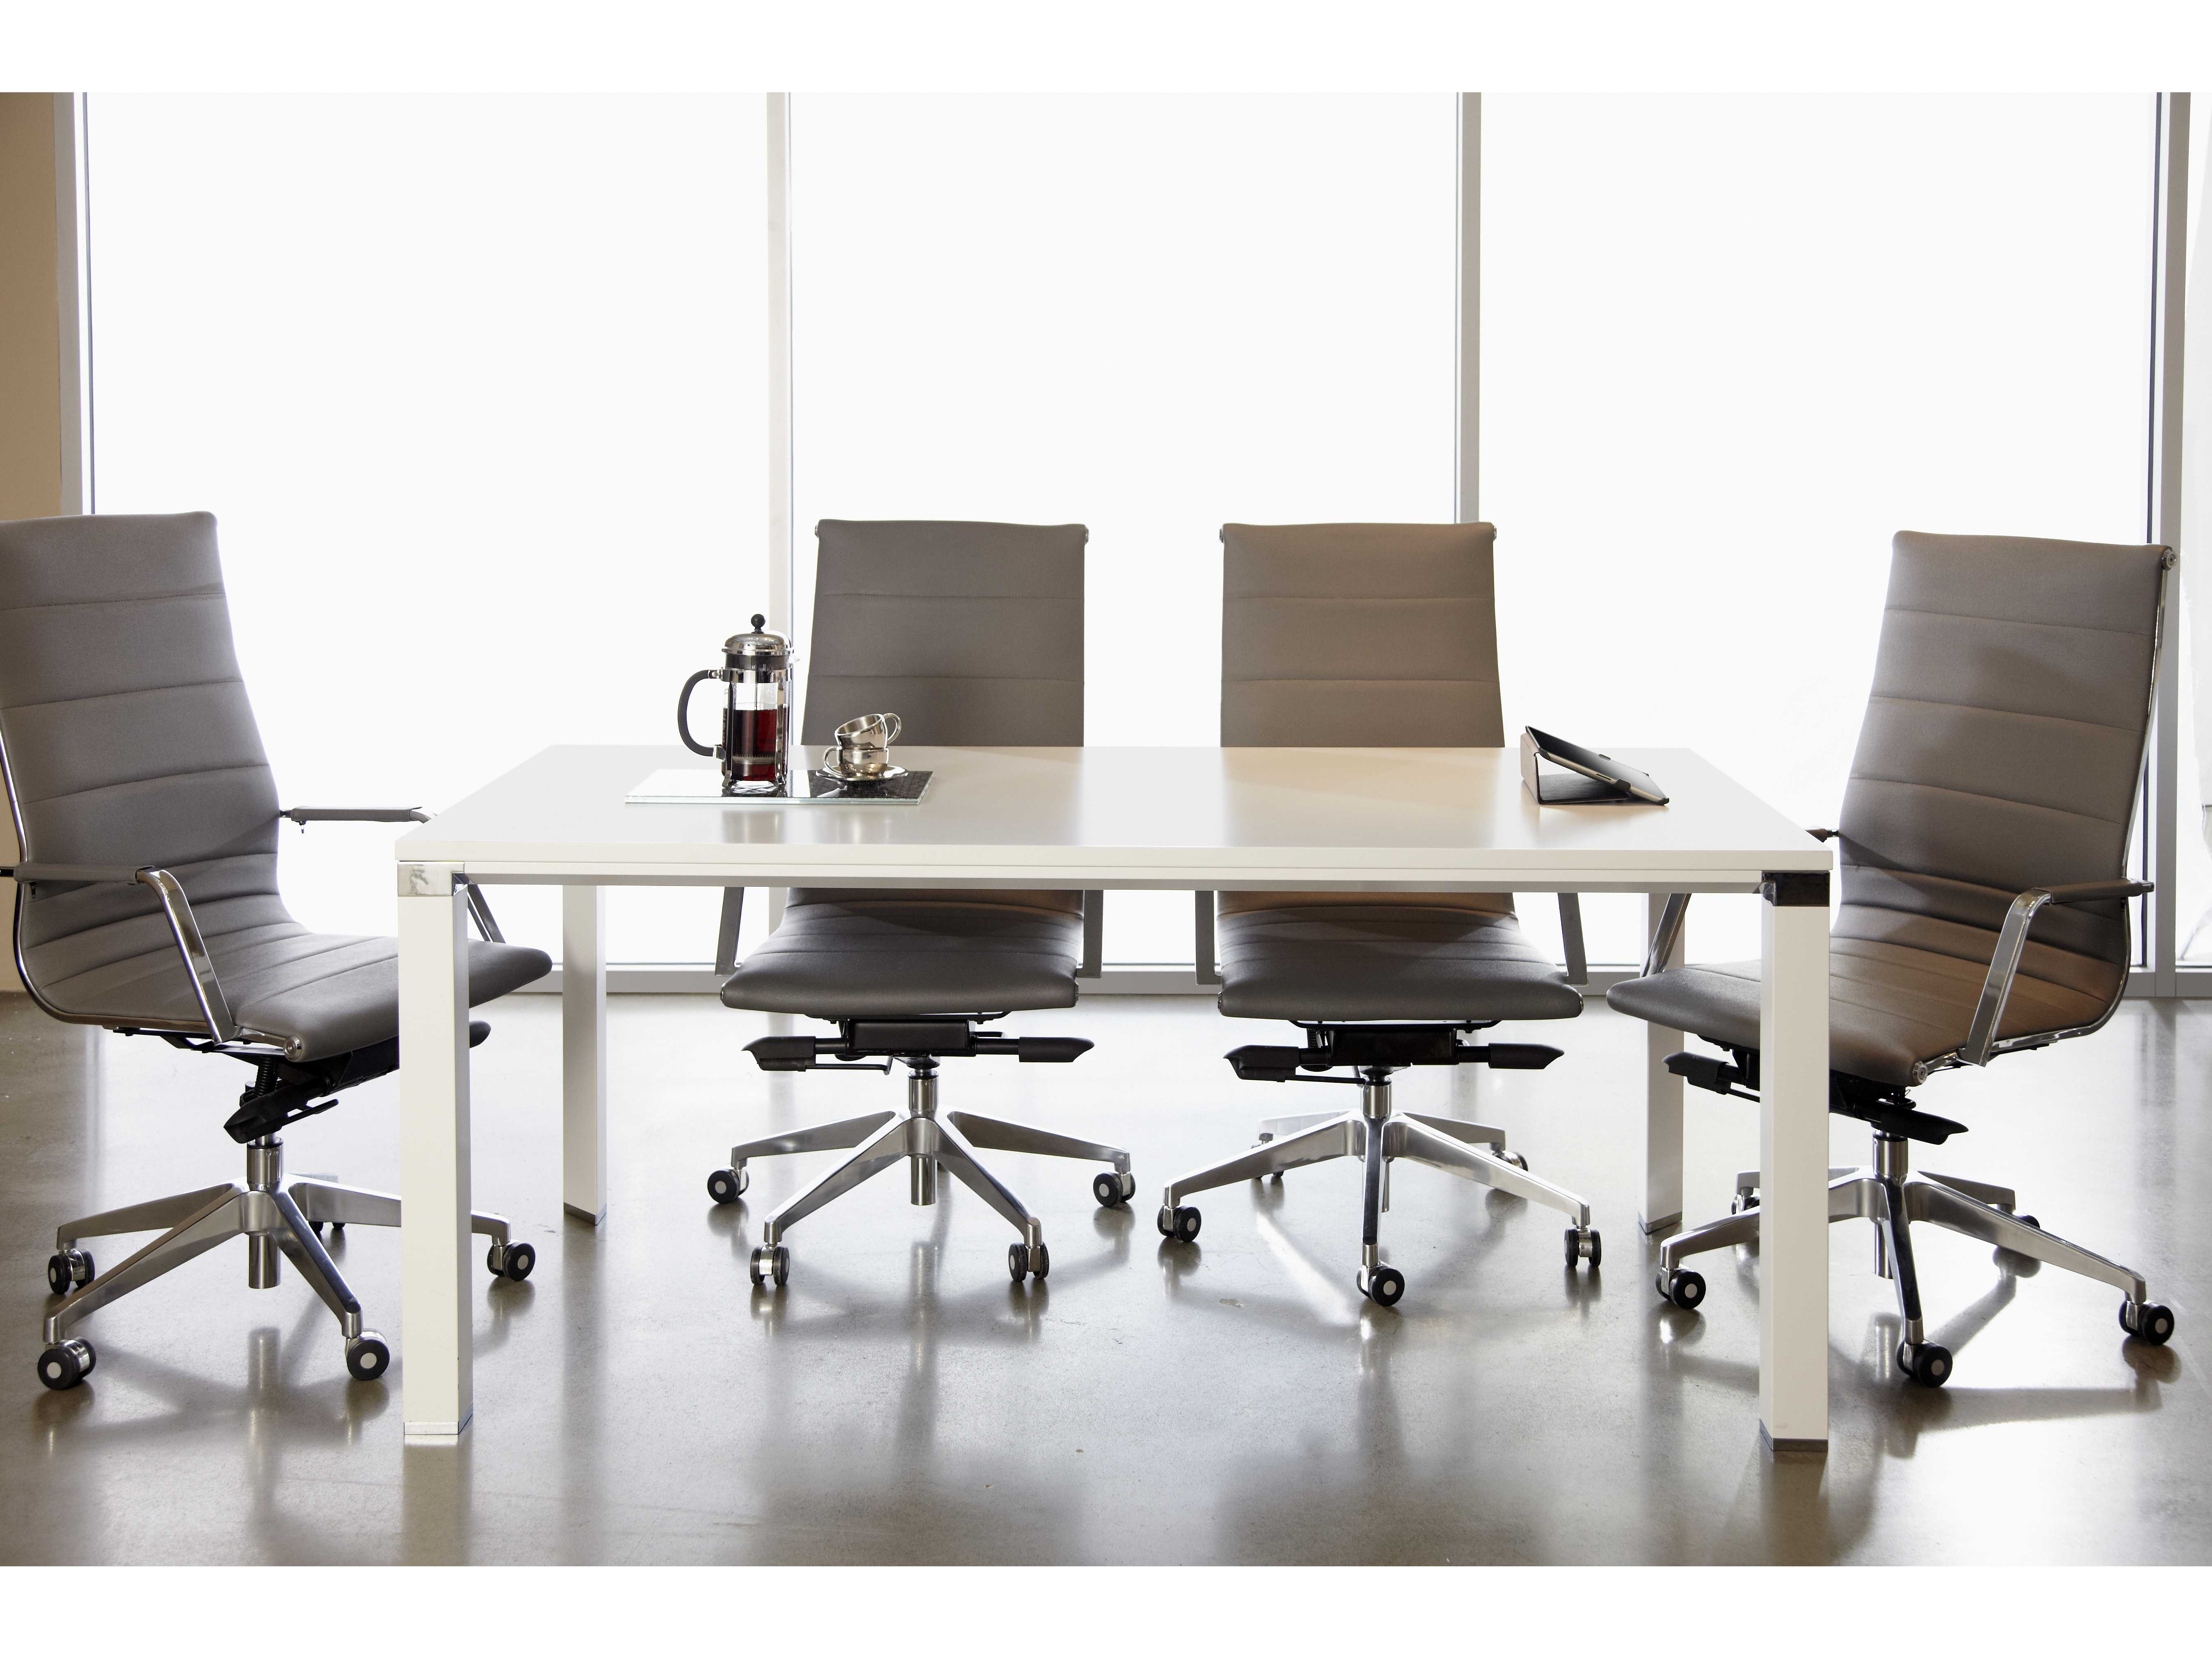 Modern Office Is A Small Family Owned And Operated Furniture Company That Has Been Located In Eden Prairie Minnesota Suburb Of